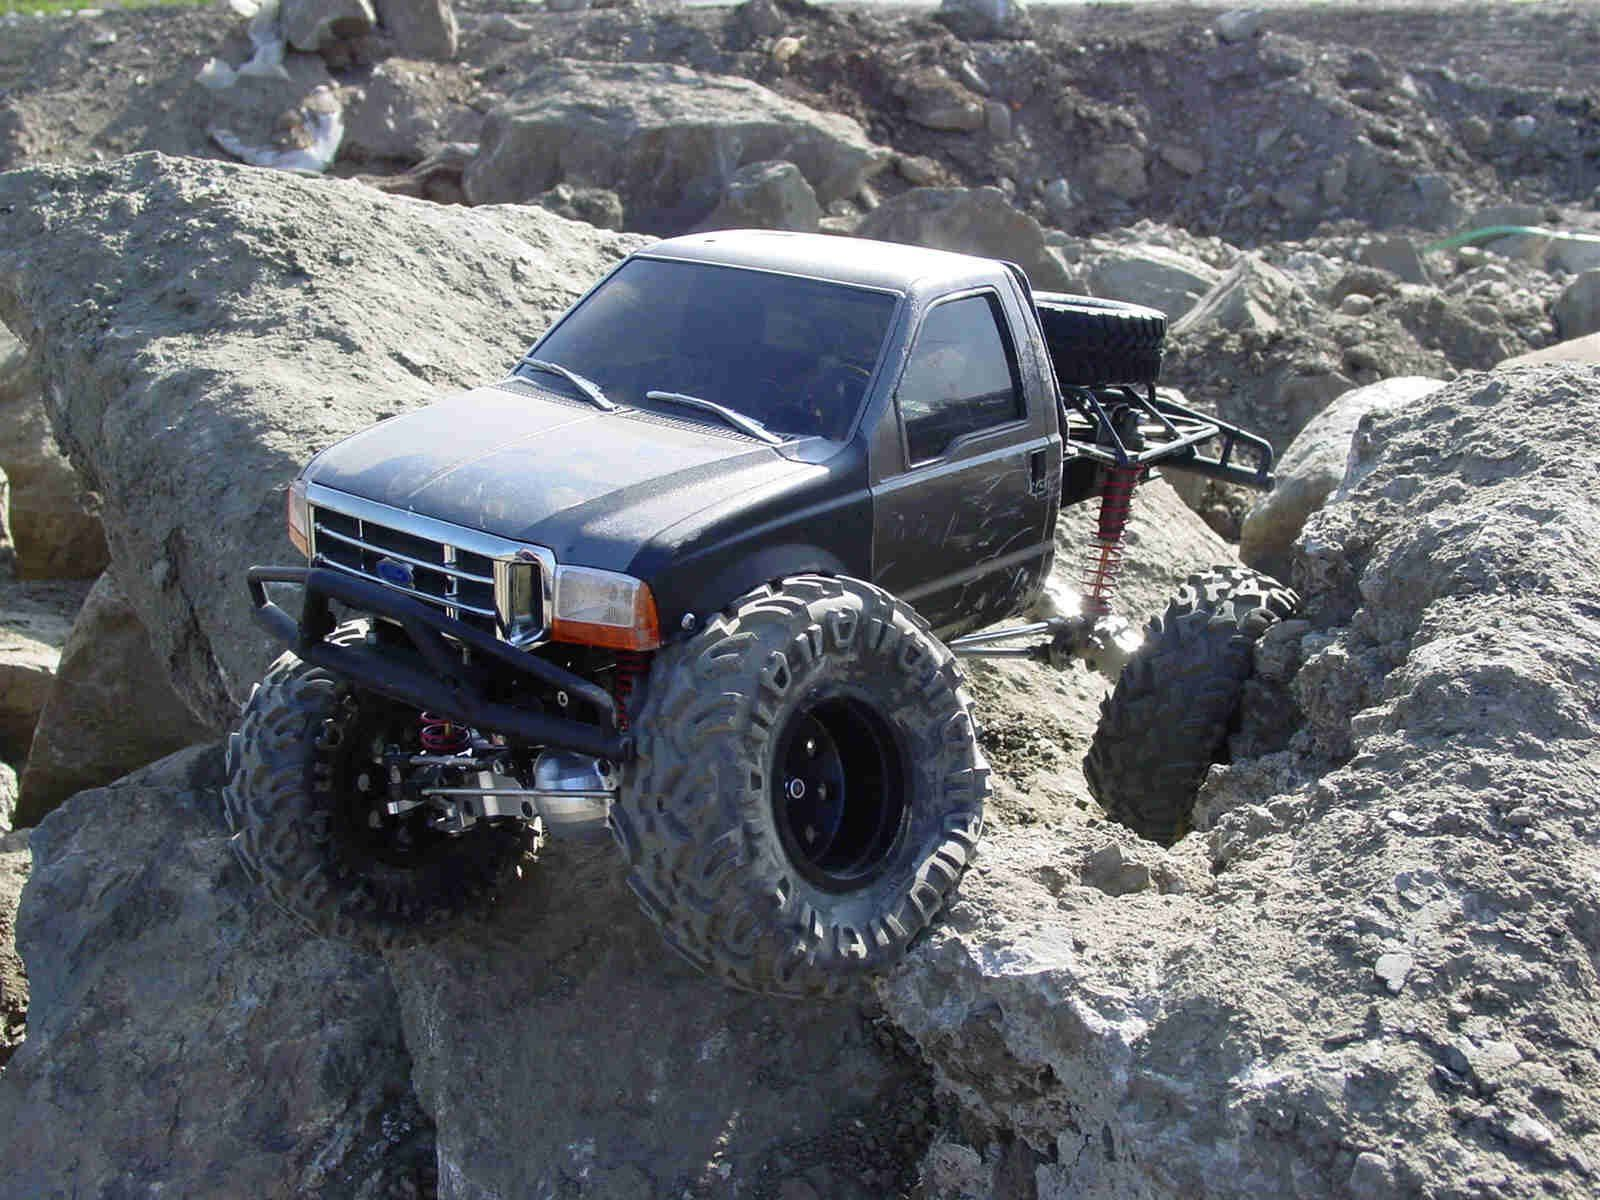 Ford F150 F250 OffRoad Trail Guides Hobby shops near me